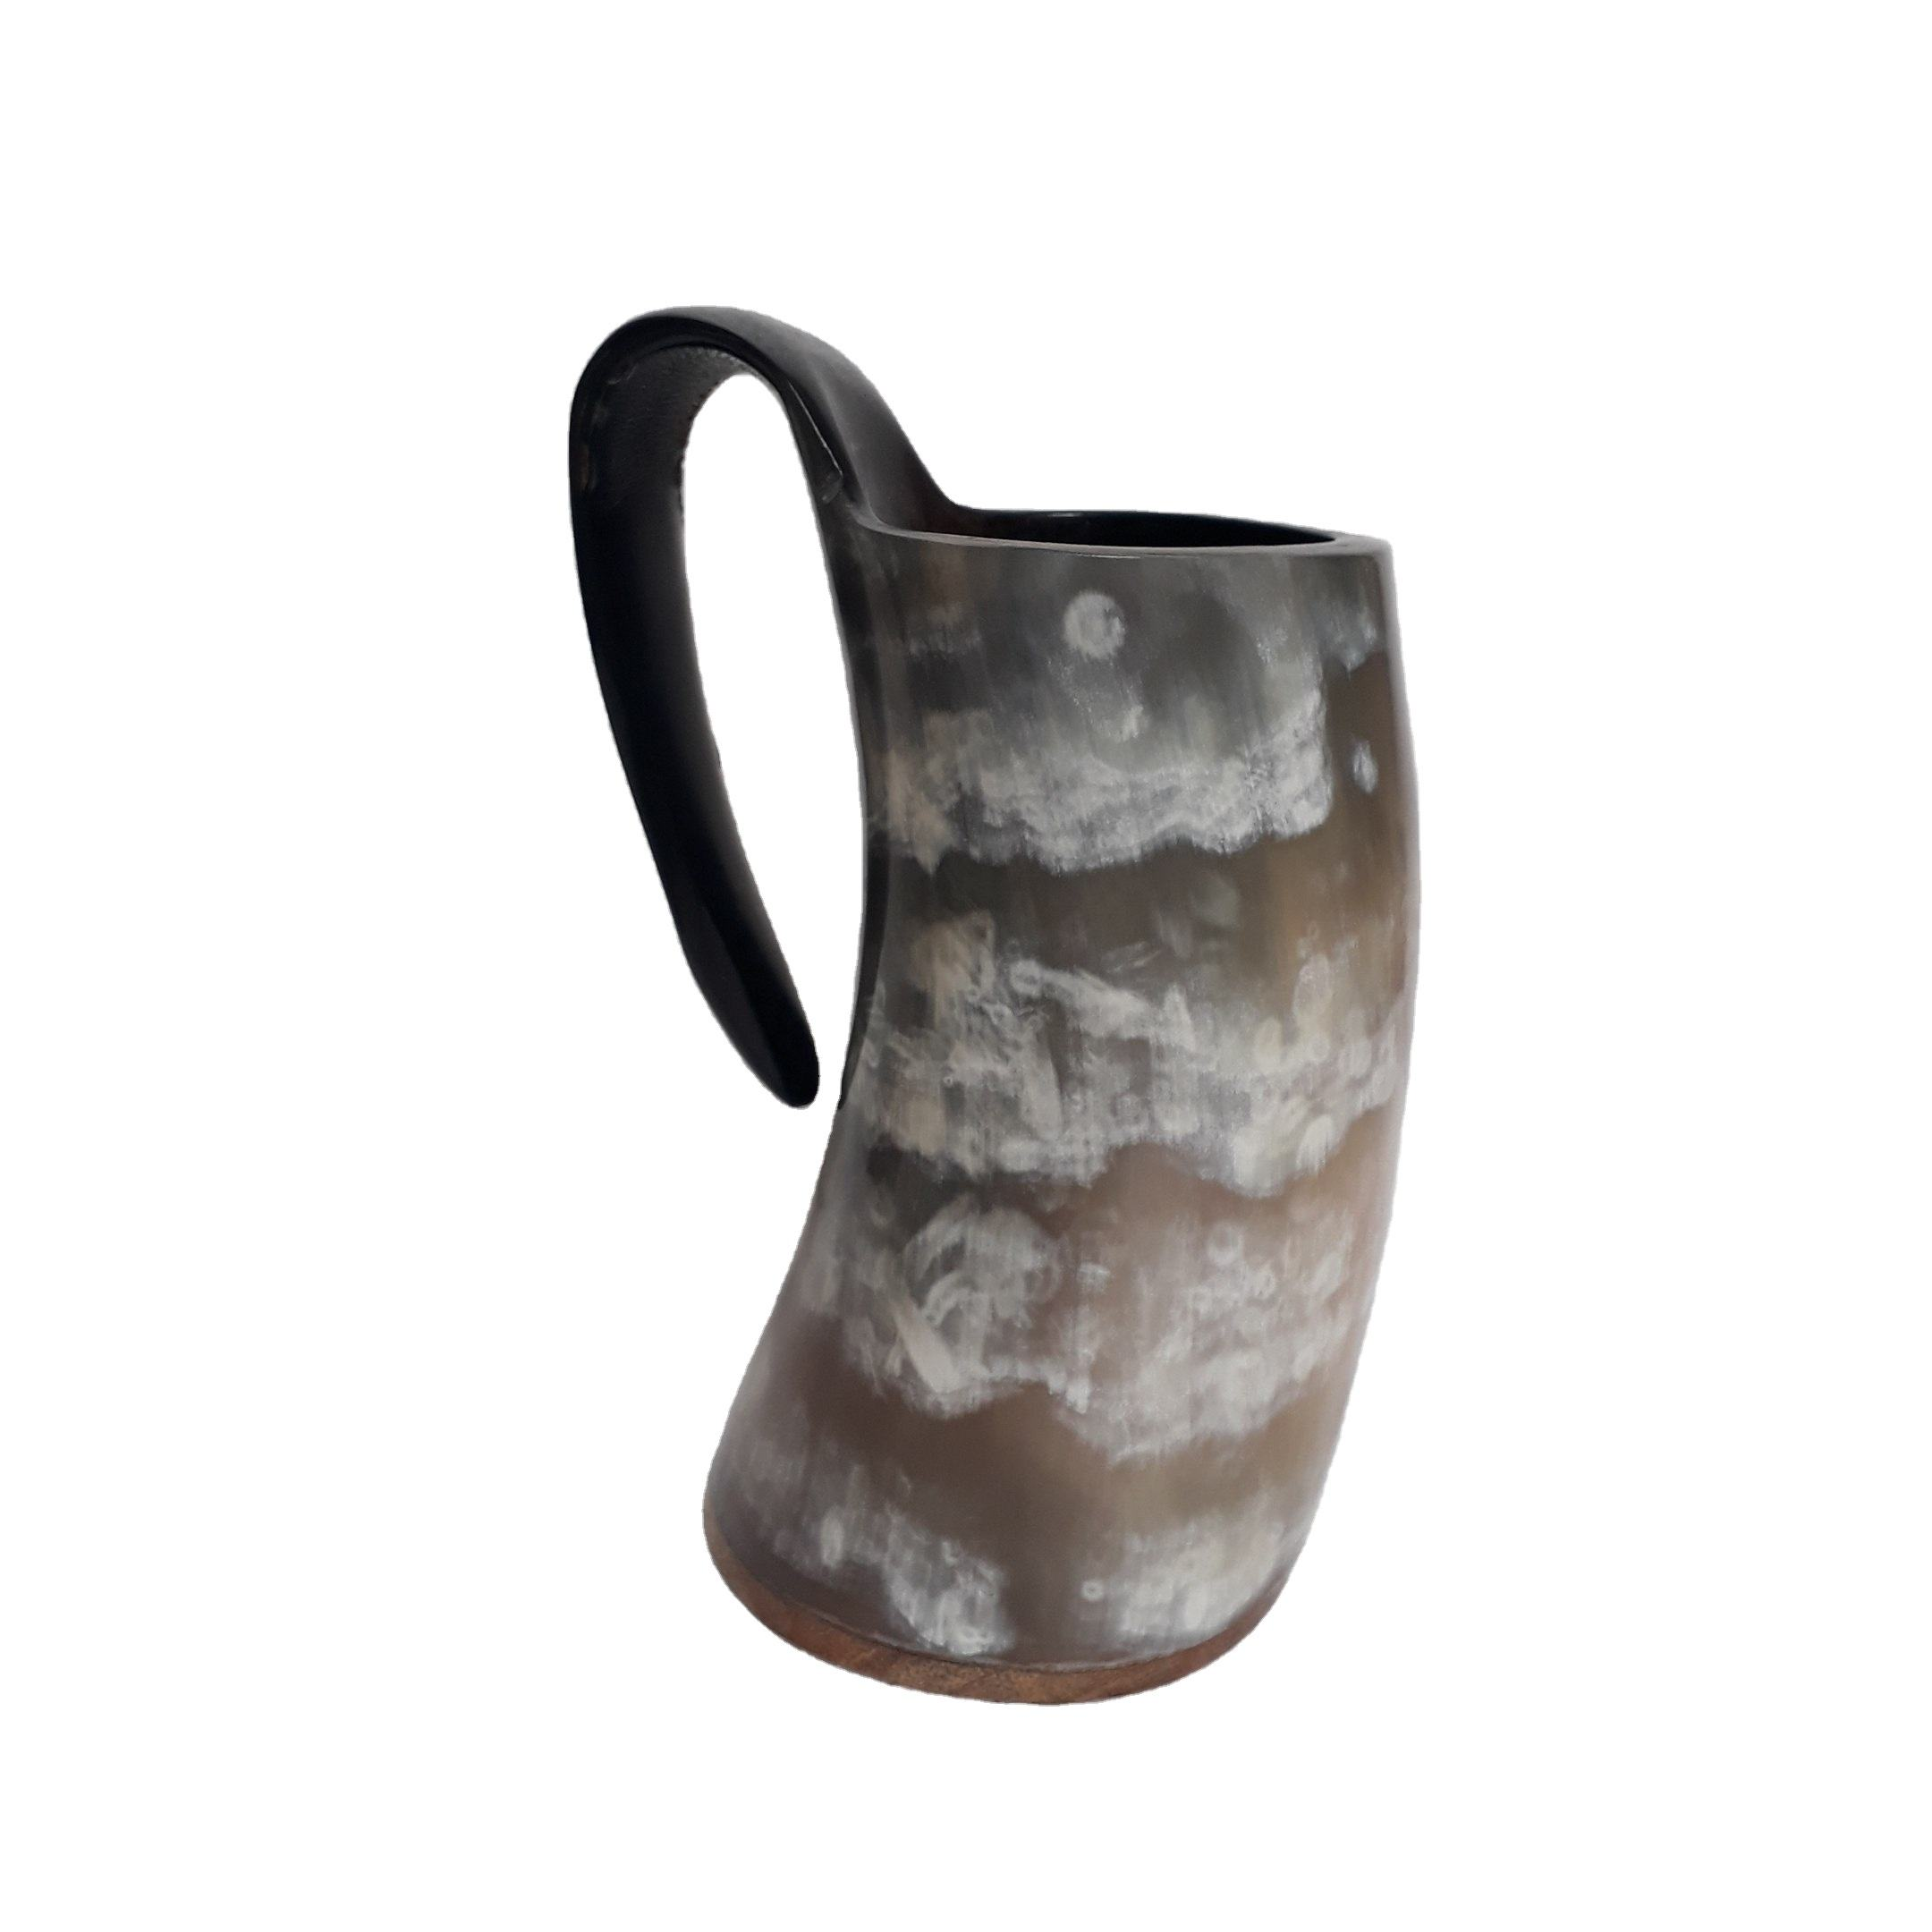 Drinking horn mug with top quality horn natural black horn mug hand long handle beer mug